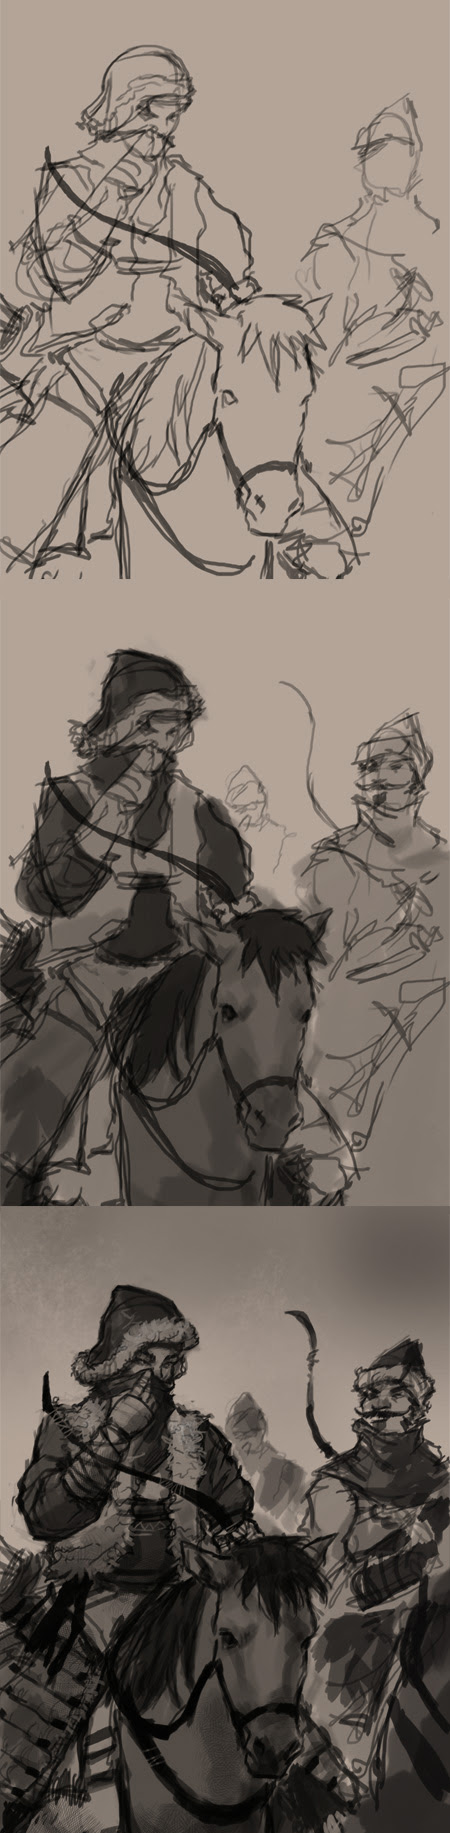 how to draw archers riding horses